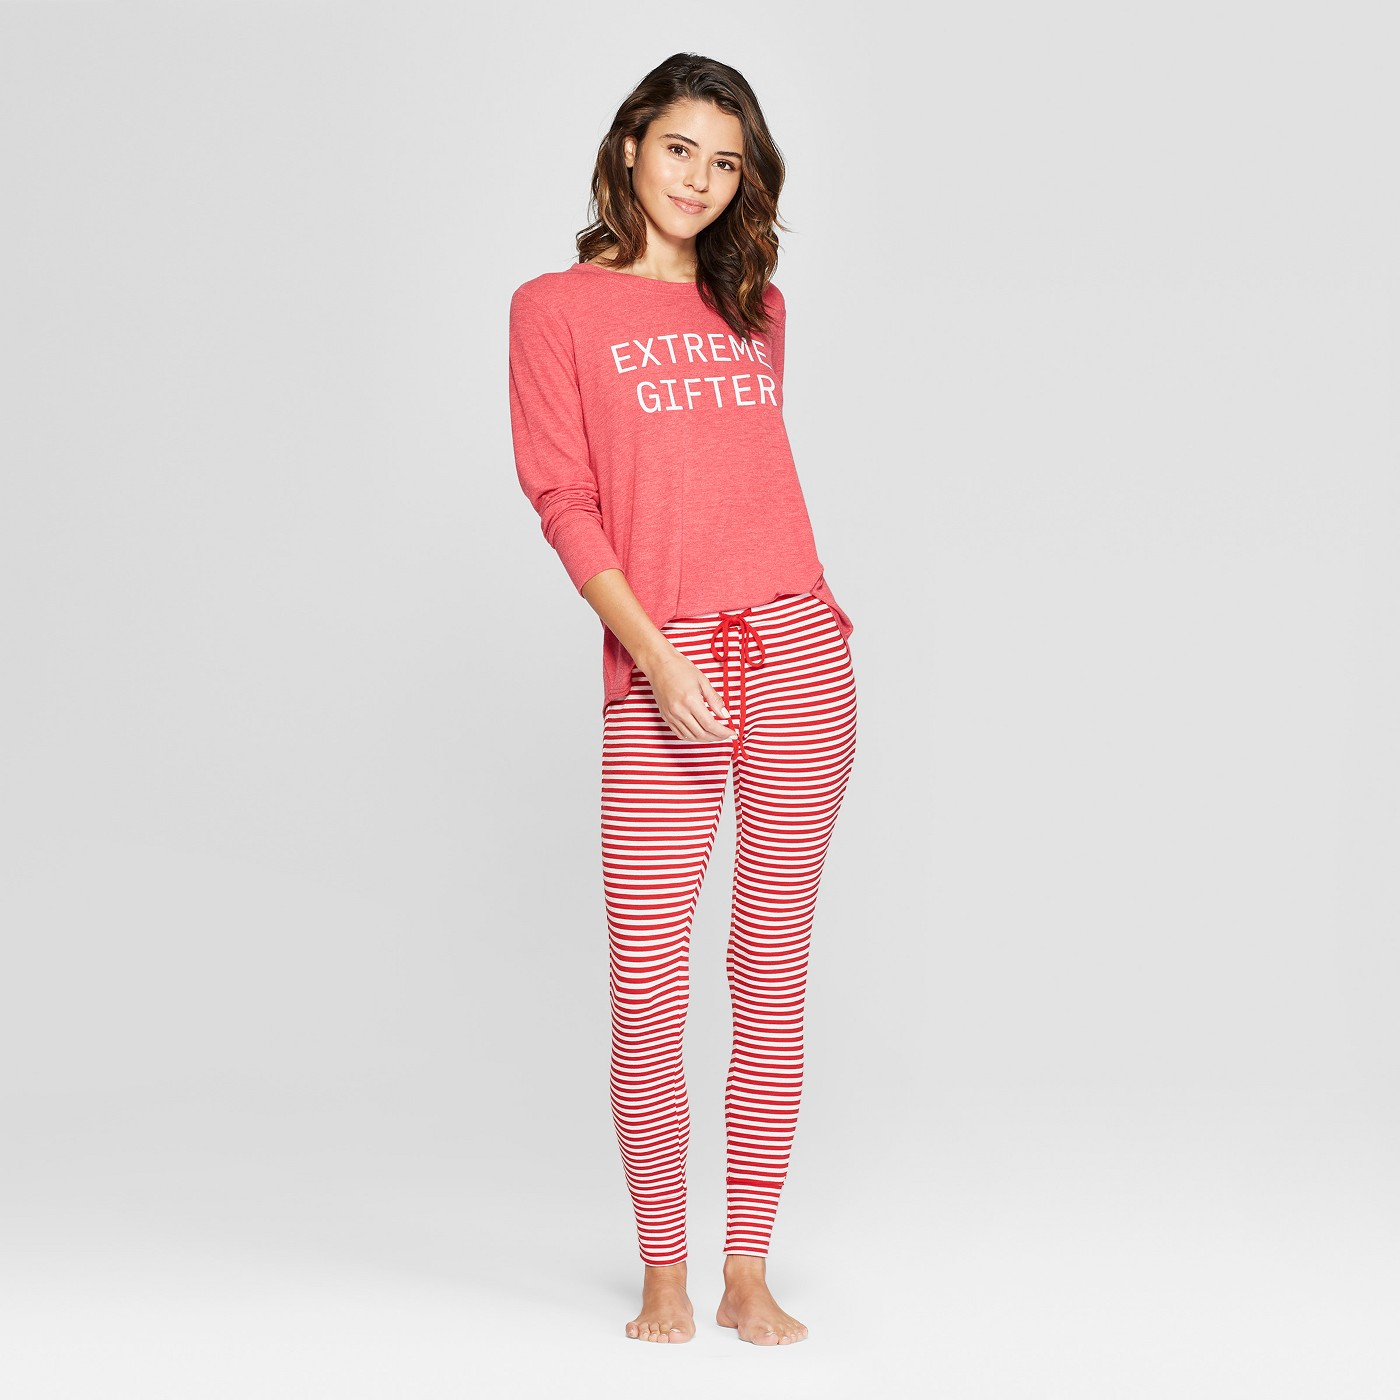 "Women's Extreme Gifter Cozy Pajama Set - Xhilarationâ""¢ Red - image 1 of 2"